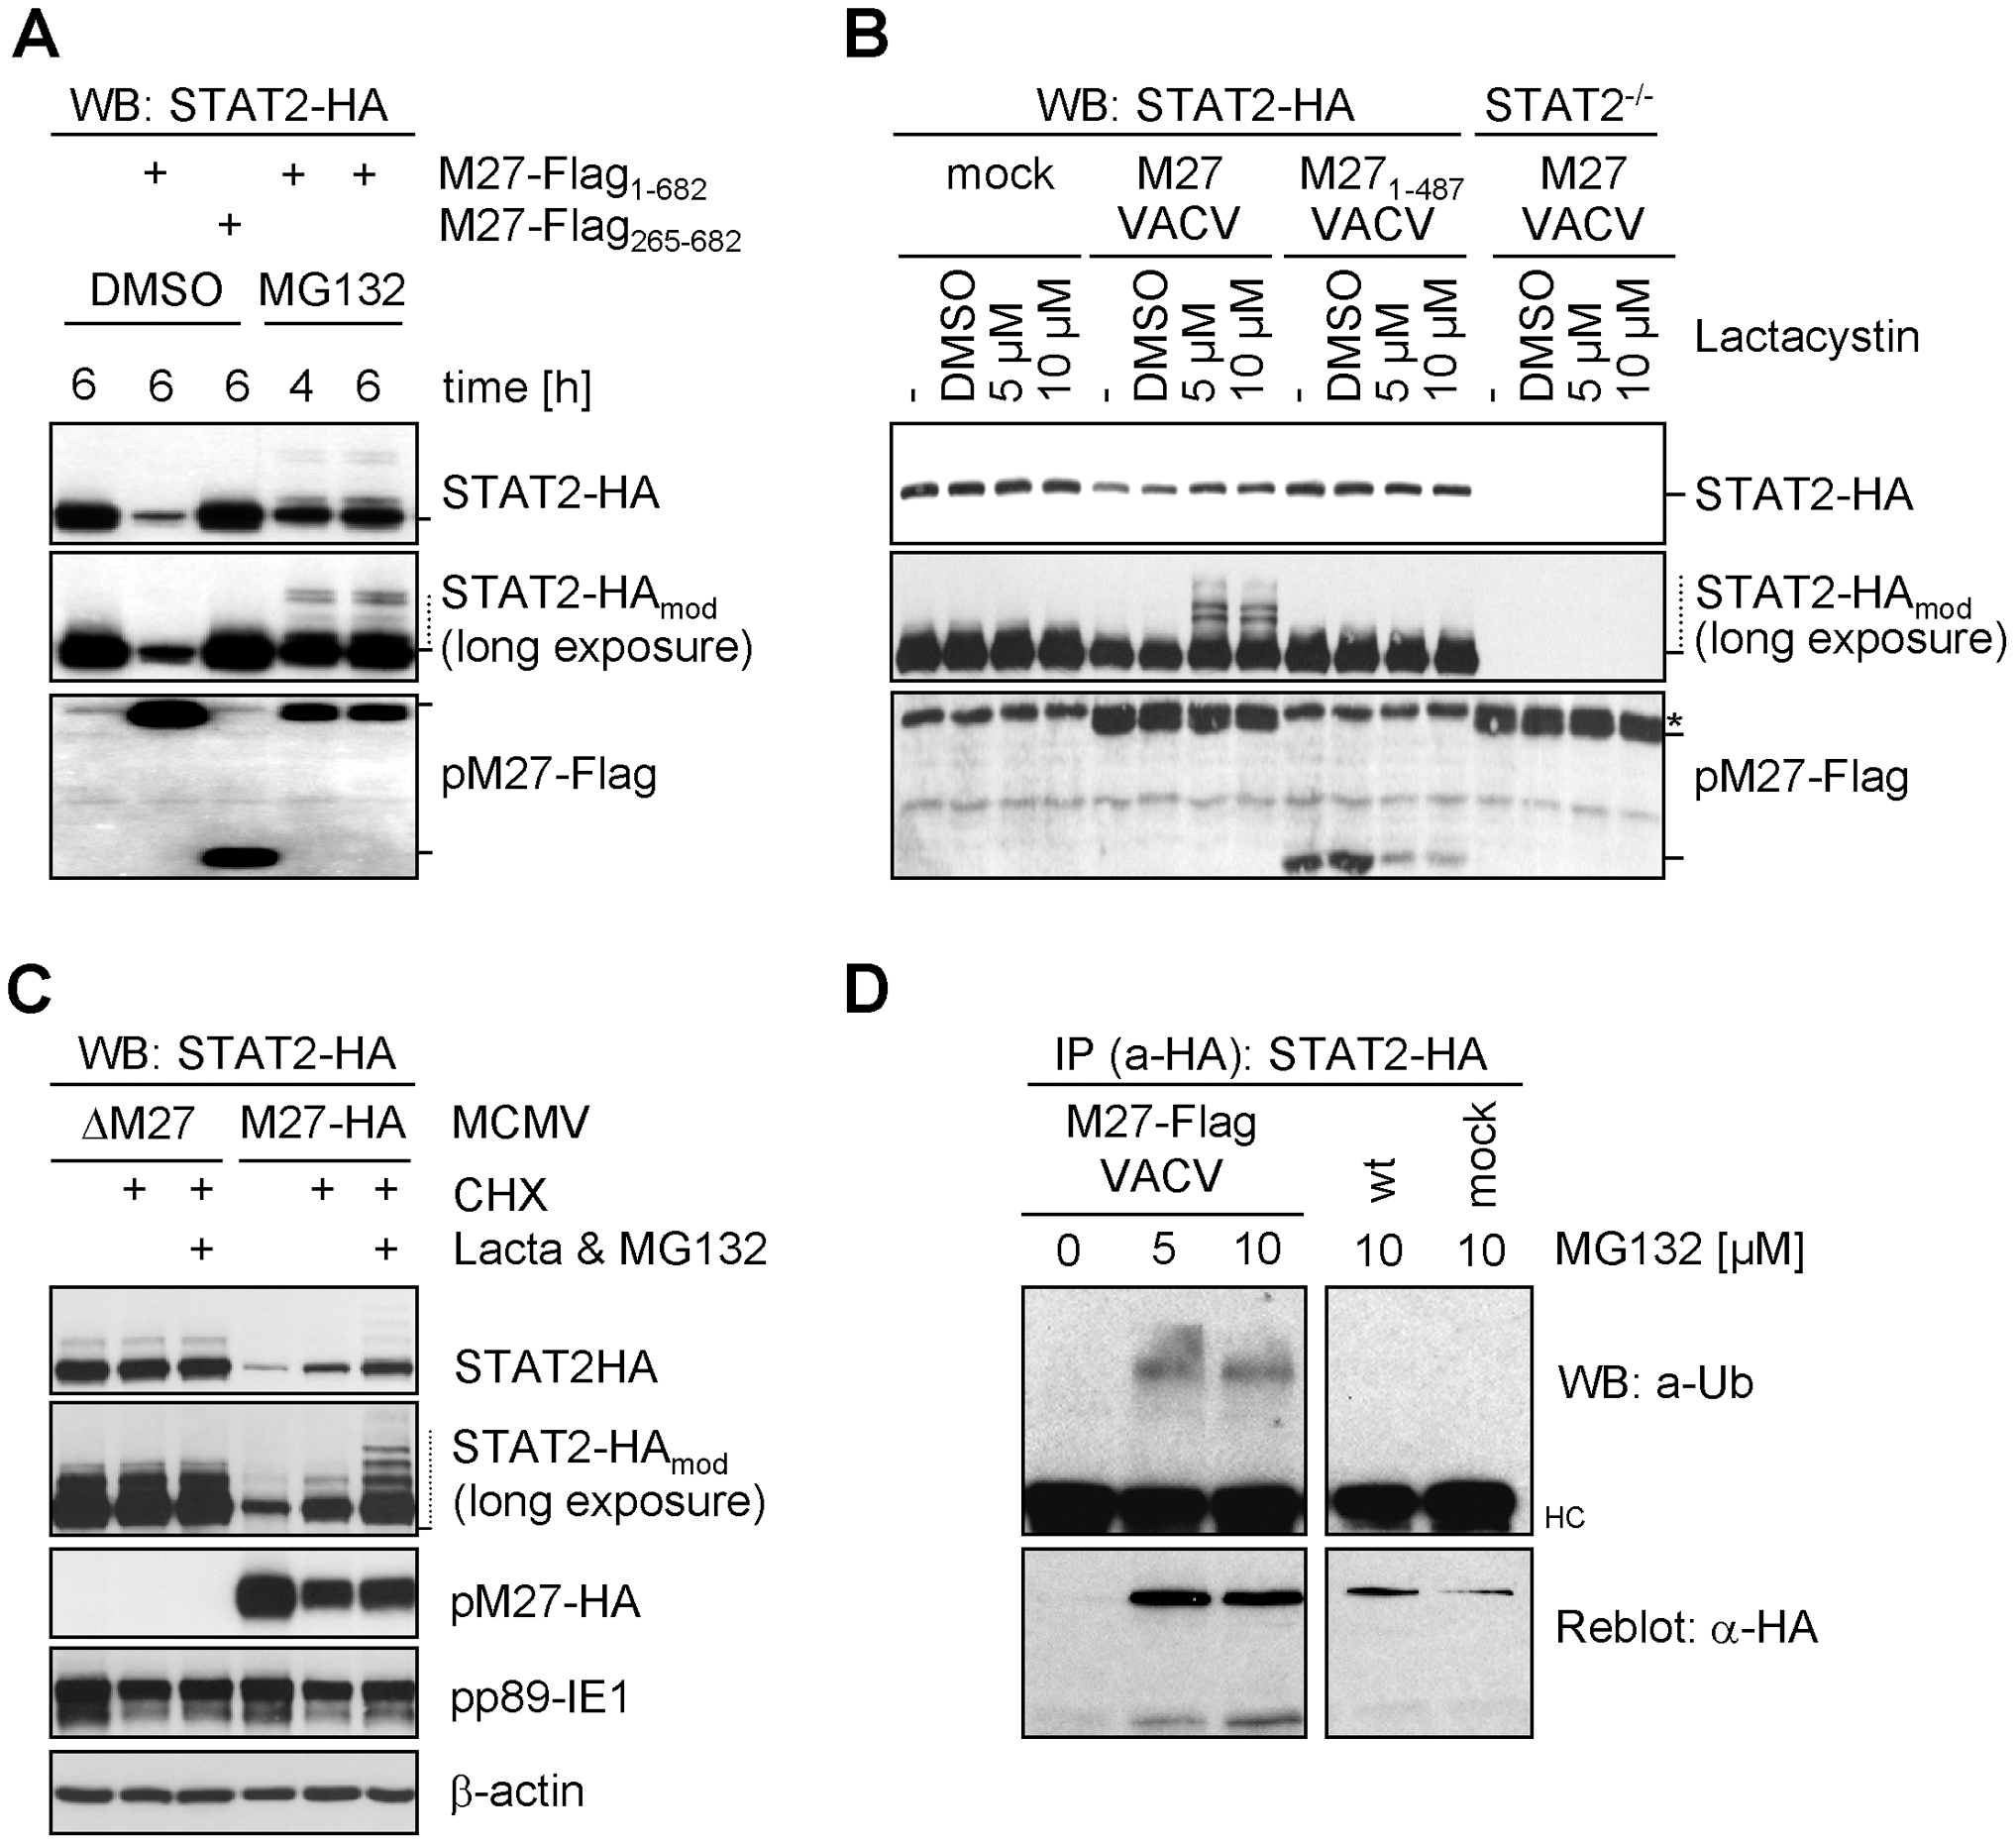 pM27 facilitates the proteasome to degrade STAT2.